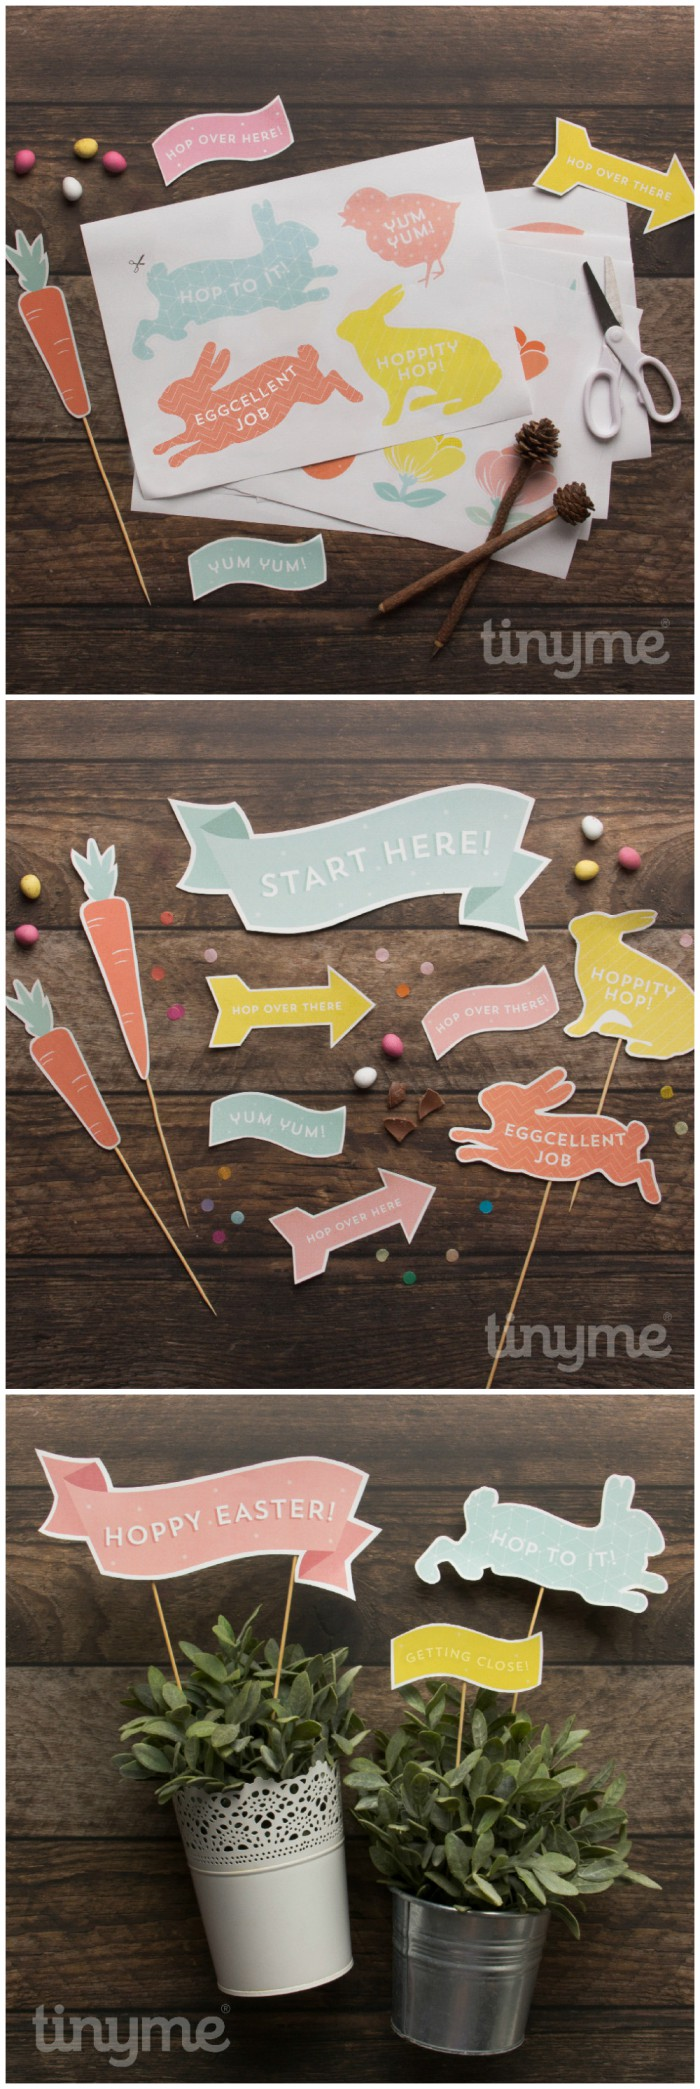 Easter egg hunt ideas. Make an Easter egg hunt trail with these cute printable signs